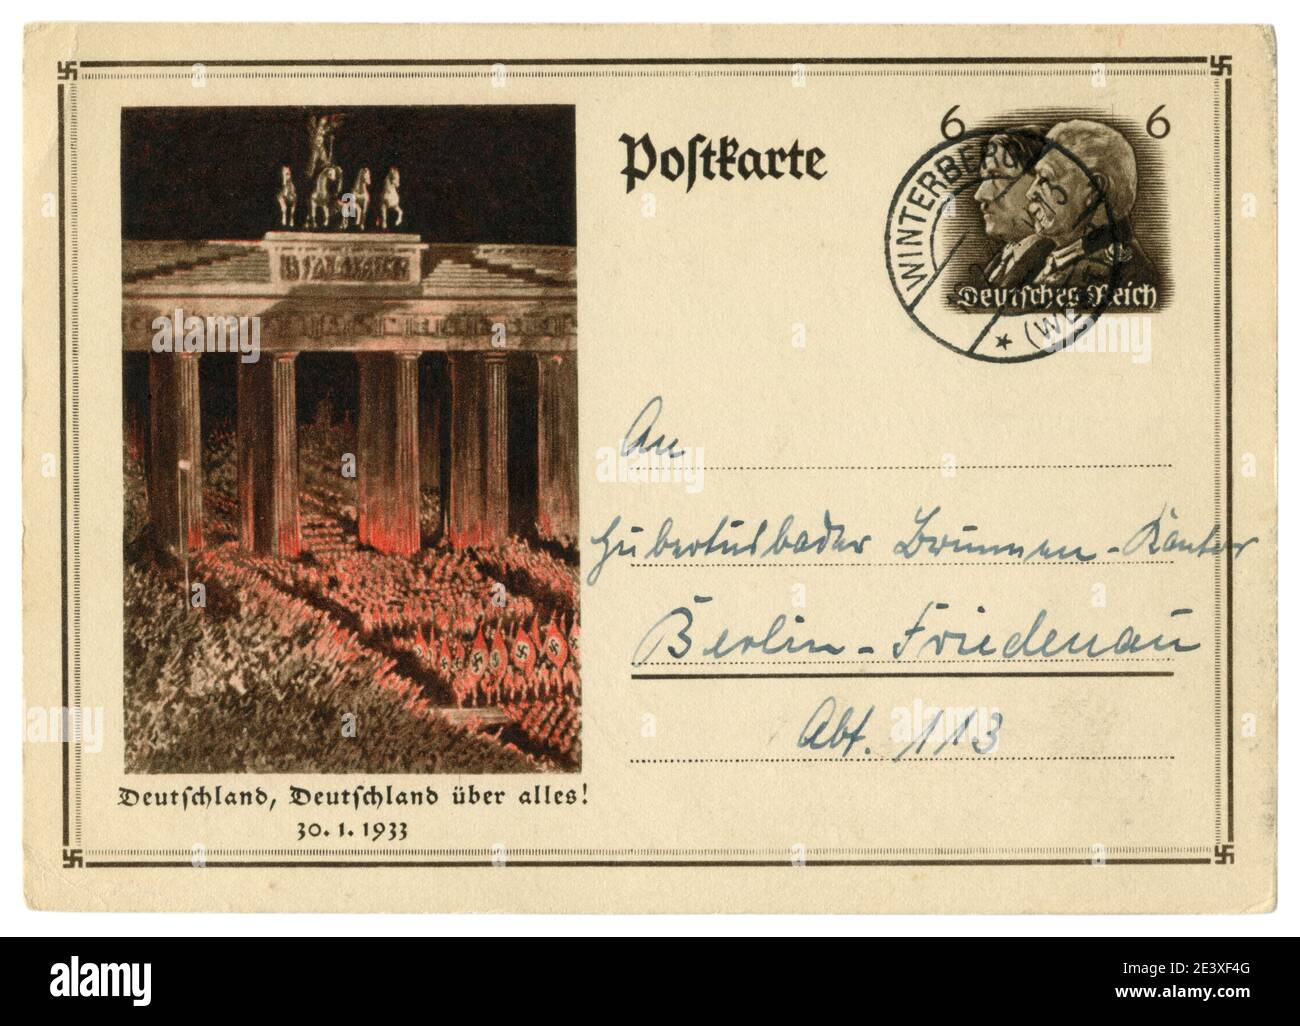 German historical postal card: Anniversary of the overthrow of power. SA troops pass by the Bradenburg gate. 30 january 1933, Germany, Third Reich Stock Photo